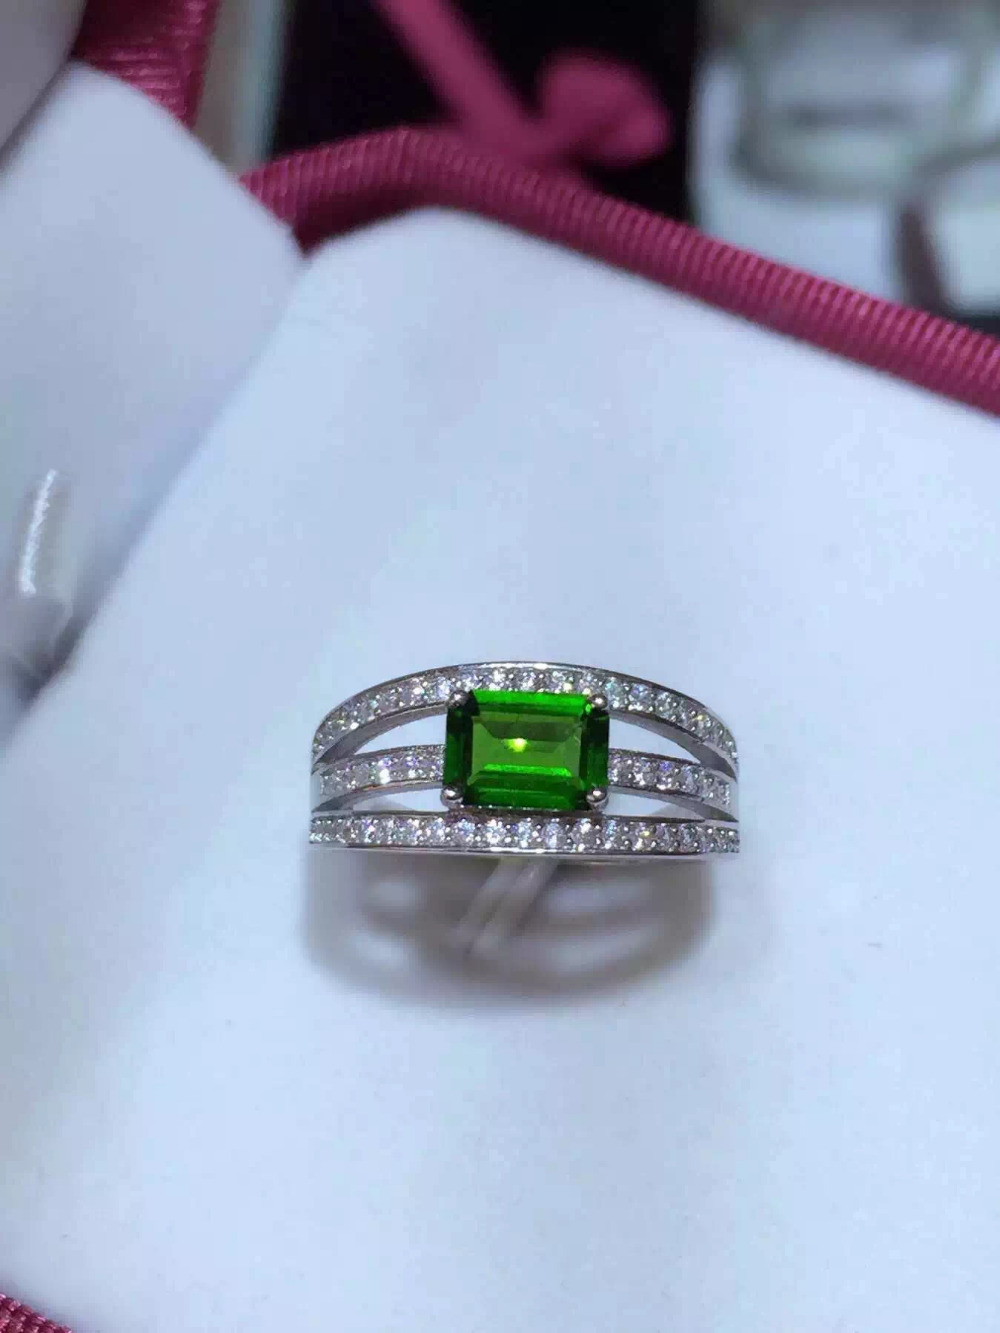 Natural diopside gem ring Natural gemstone ring S925 sterling silver ring trendy elegant row overlapping women gift JewelryNatural diopside gem ring Natural gemstone ring S925 sterling silver ring trendy elegant row overlapping women gift Jewelry